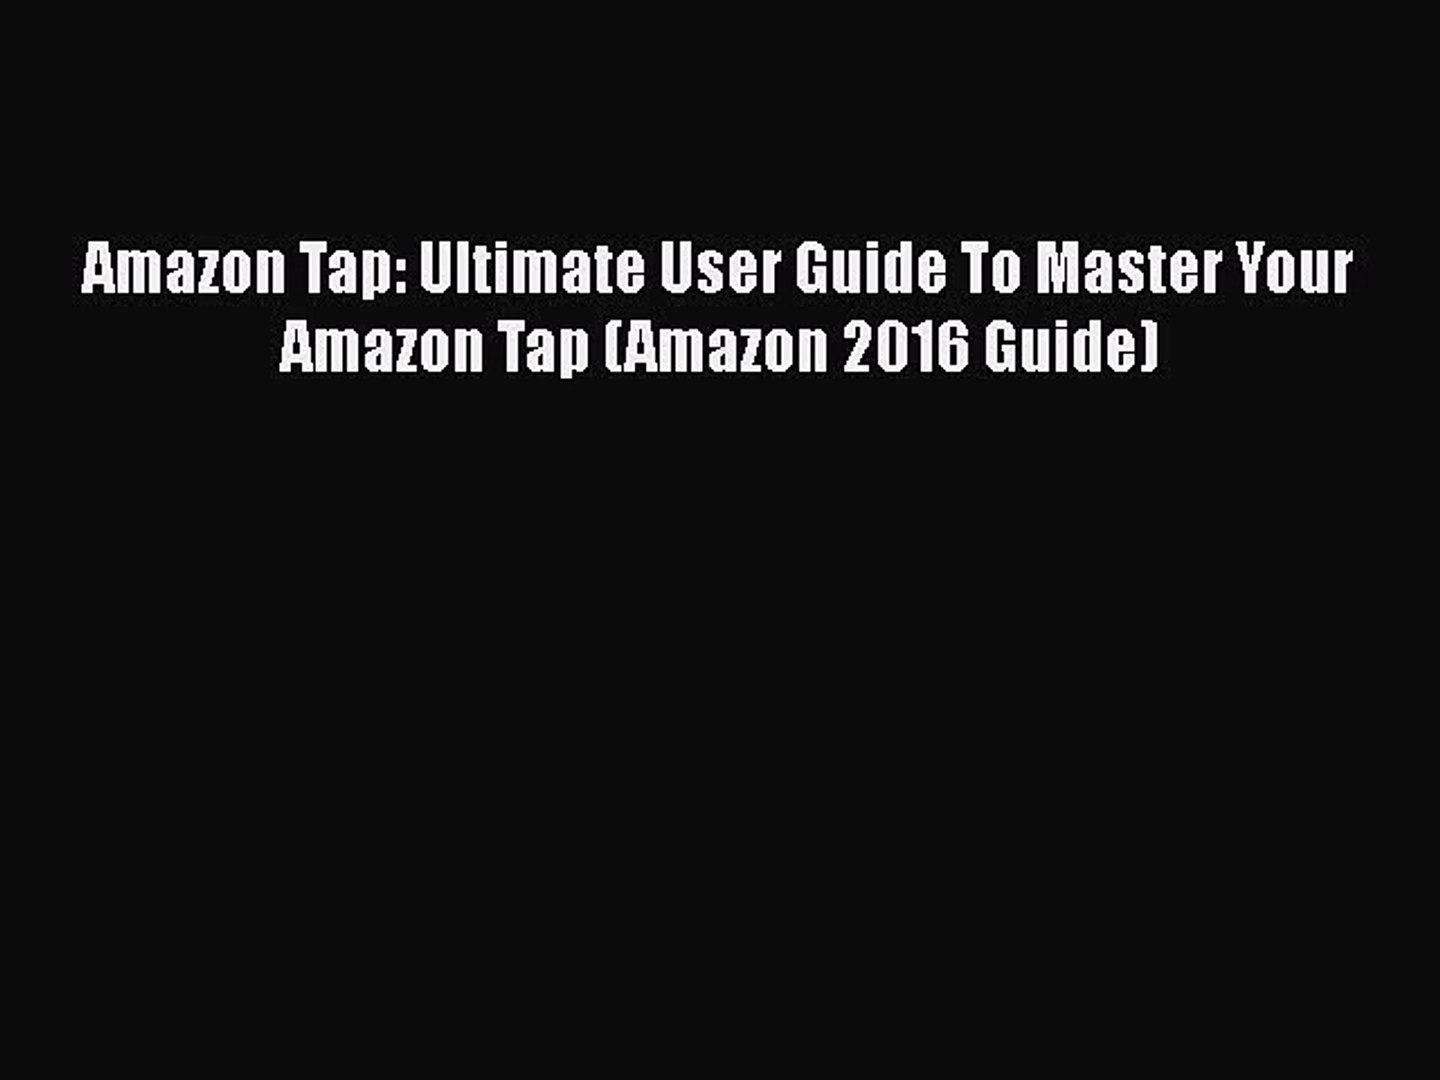 [Read Book] Amazon Tap: Ultimate User Guide To Master Your Amazon Tap (Amazon 2016 Guide) Free